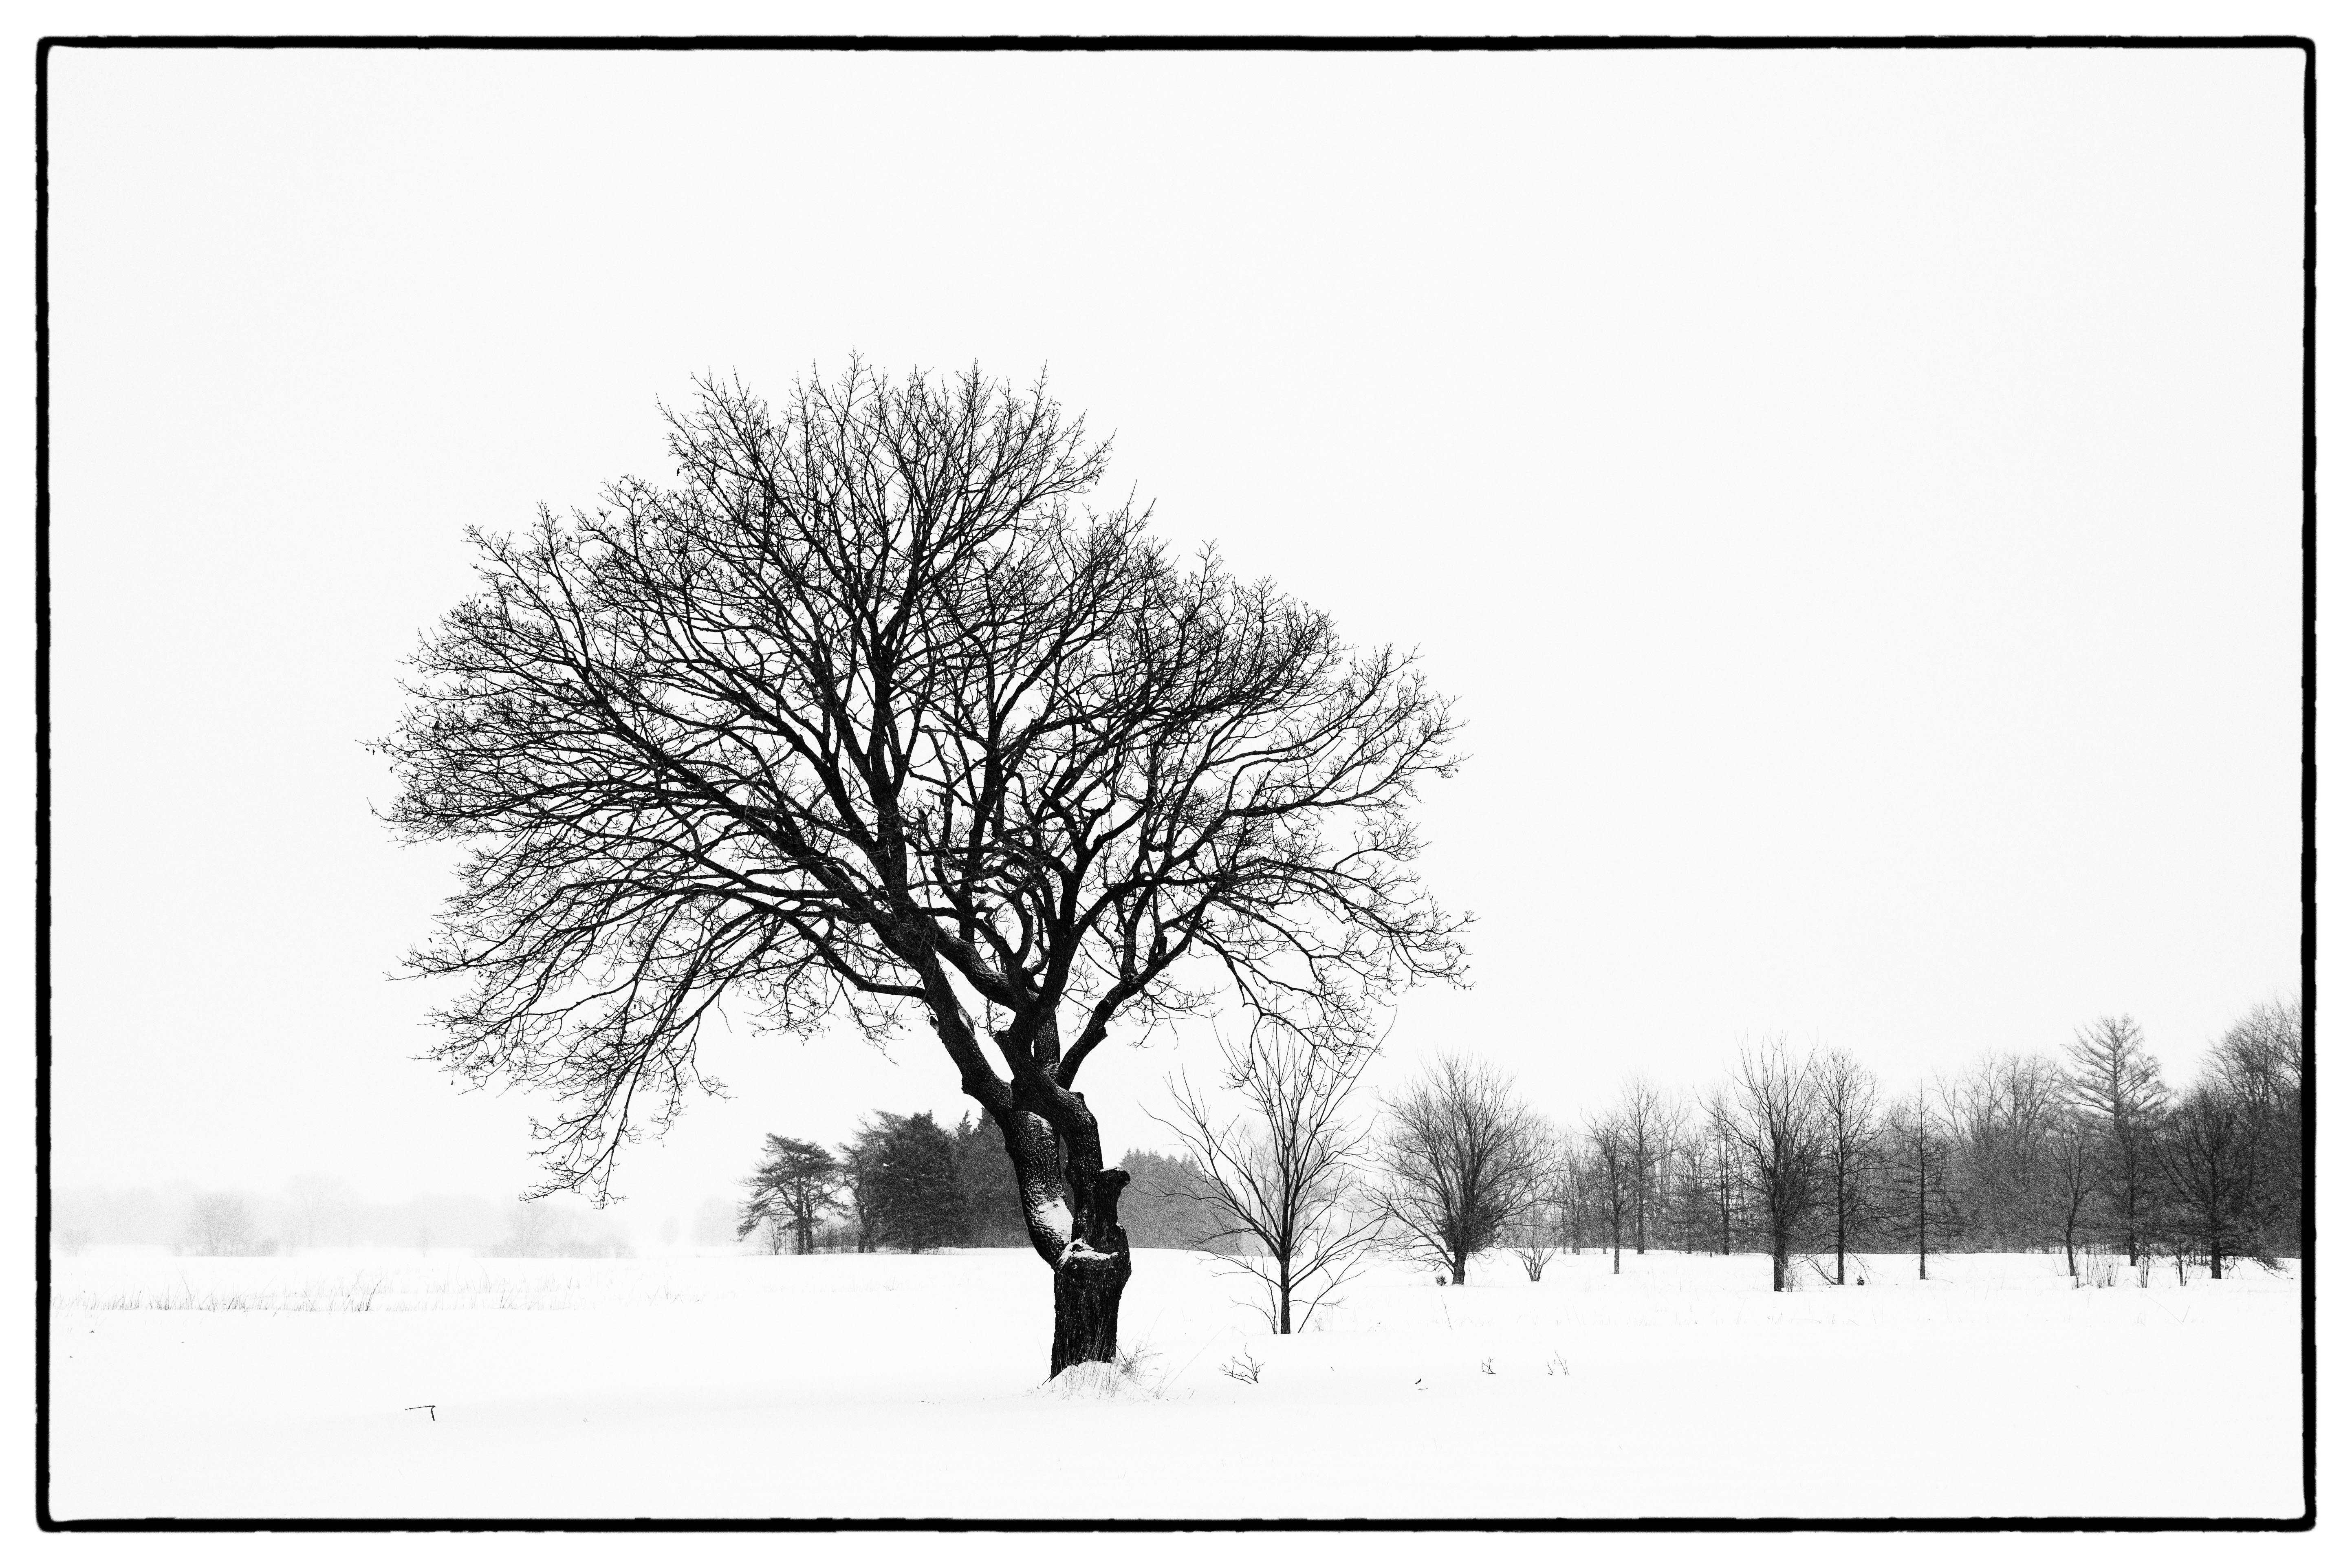 Regular viewers of the Fermilab Photo of the Day may recognize this tree, which, as the photographer's favorite, has graced our screens before. Last summer, a good-sized limb was lopped off, altering the shape that drew him to it in the first place and diminishing some of its appeal. During the polar vortex, the photographer made amends and captured it in all its frozen beauty. nature, winter, snow, landscape, plant, tree Photo: Tom Nicol